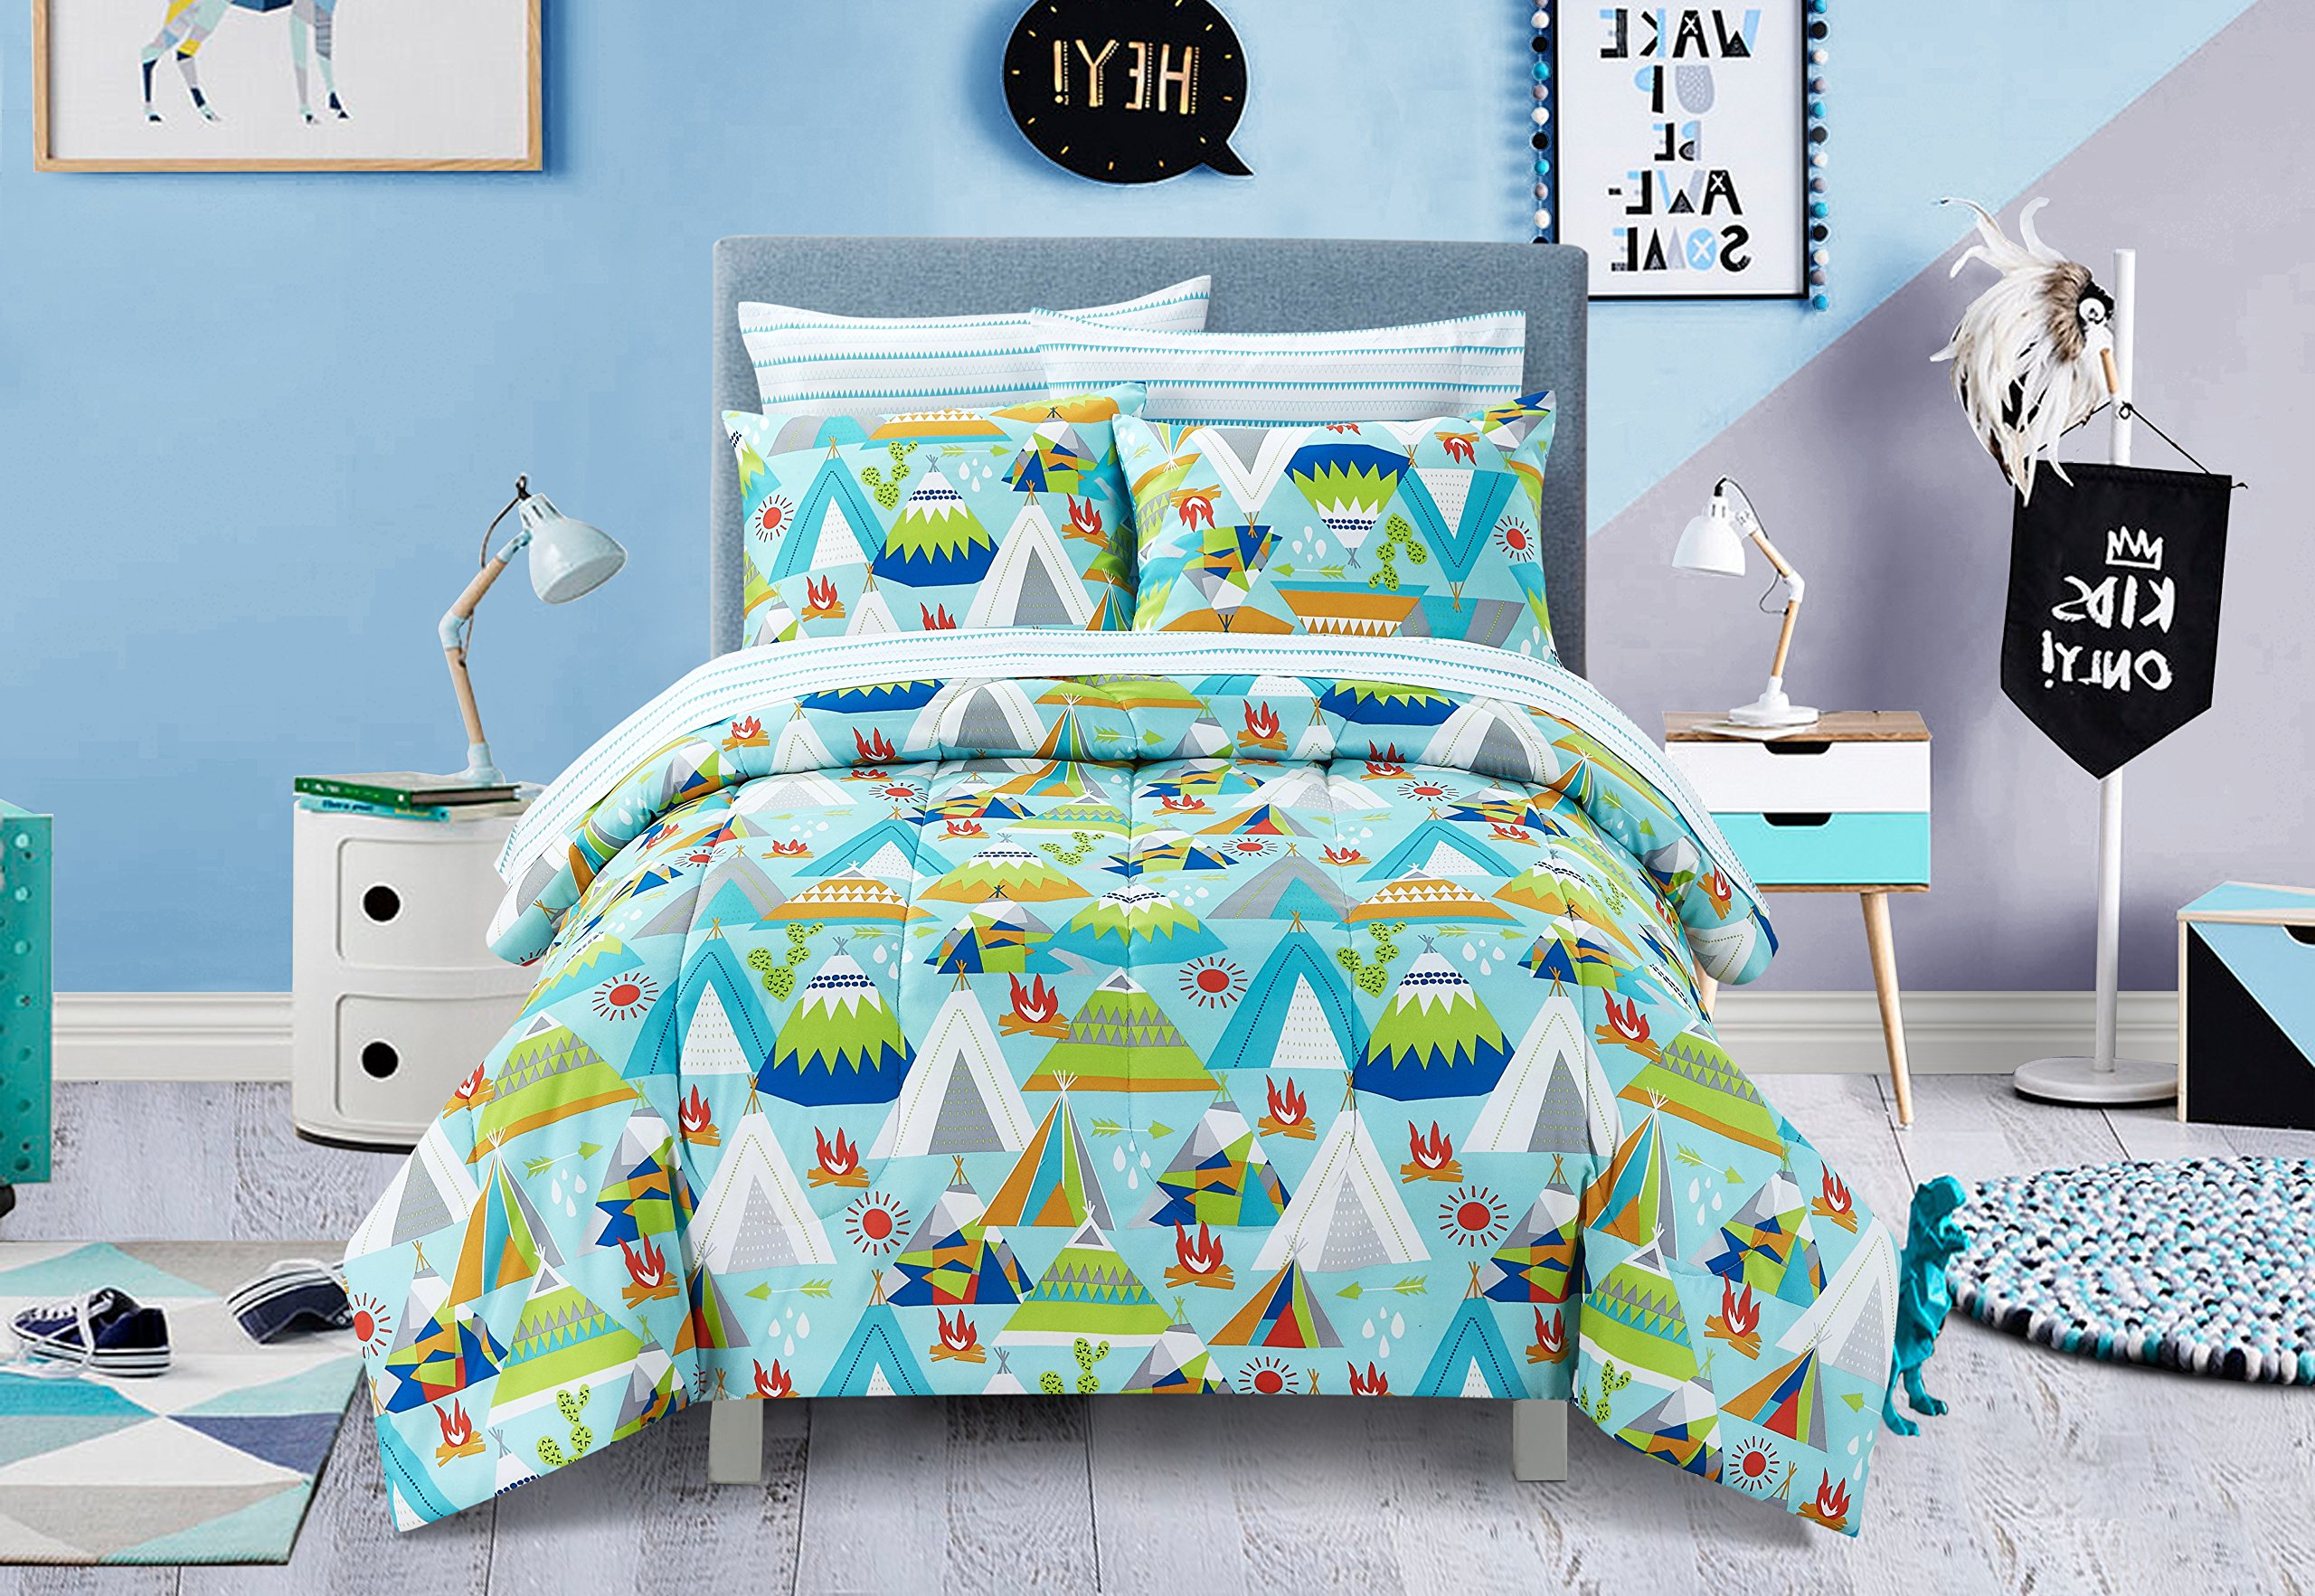 7 Piece Kids Boys Blue Green Camping Comforter Set Full Sized, White Red Picnic Bedding Outdoor Camp Bed in Bag Tents Trees Firewood Arrow Sunny Day Wilderness Forest Jungle Adventure, Polyester